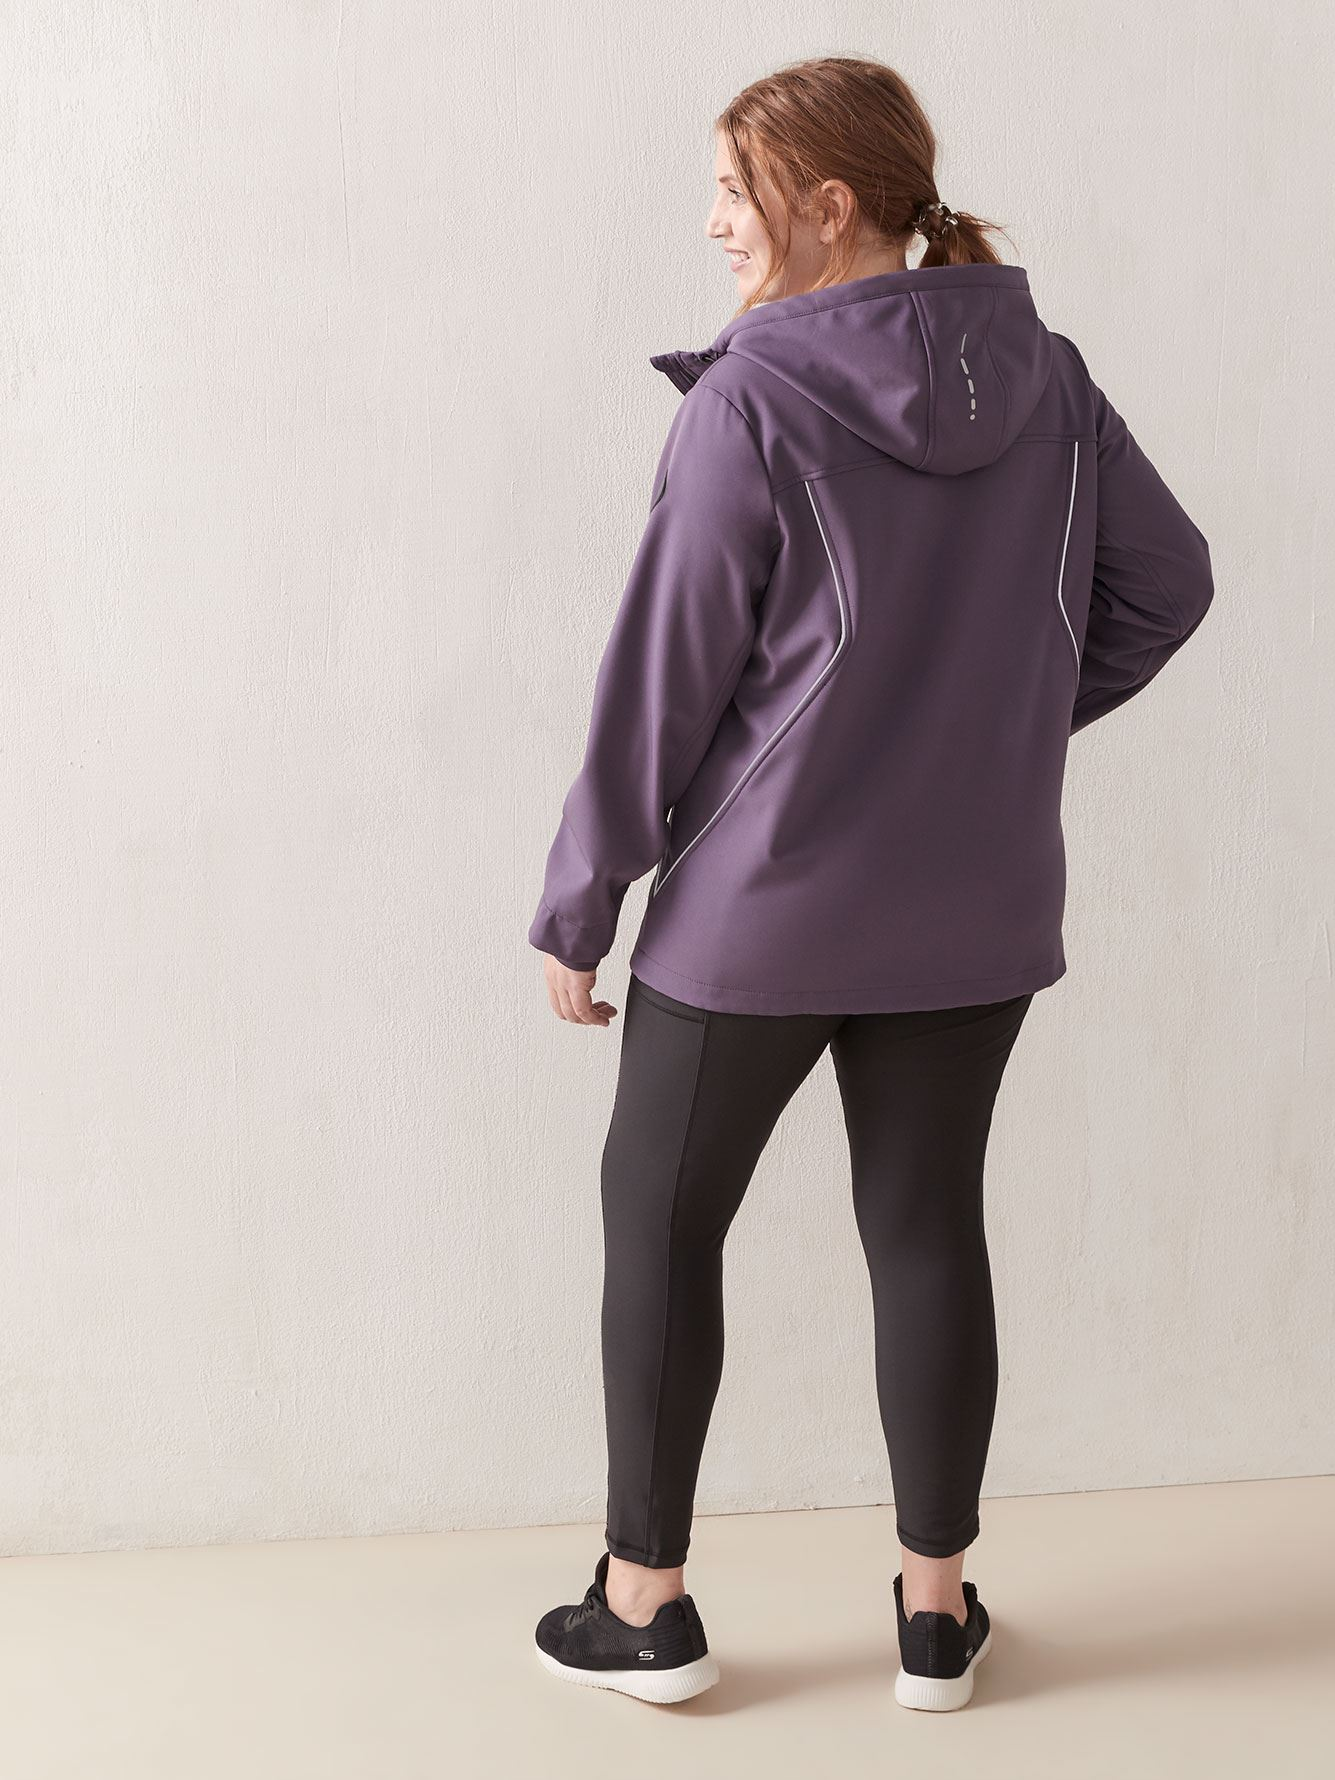 Mid-Length Zip-Front Hooded Softshell - ActiveZone